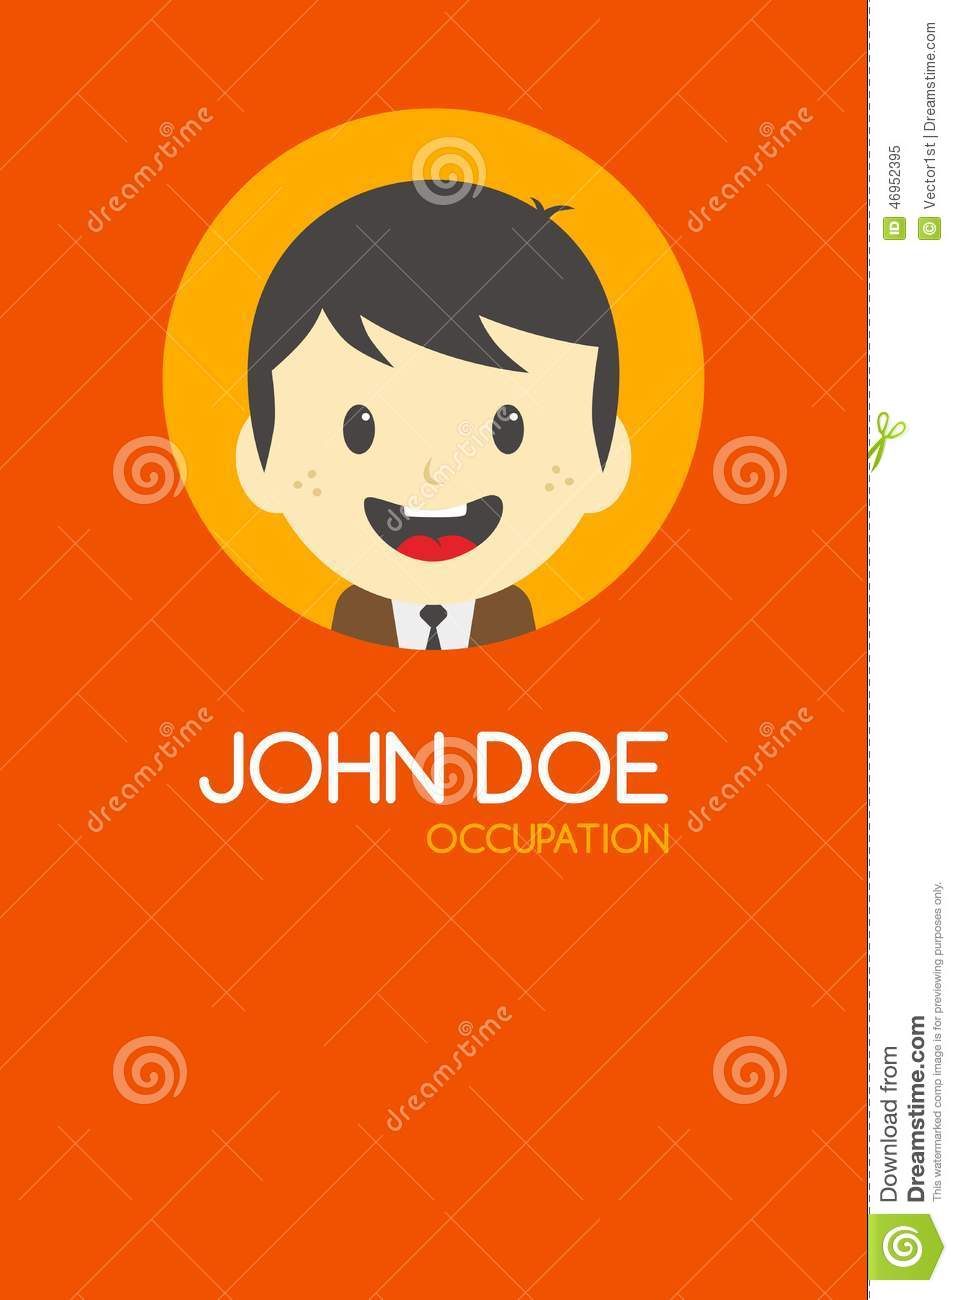 Man Cartoon Theme Business Card Stock Vector - Illustration of ...